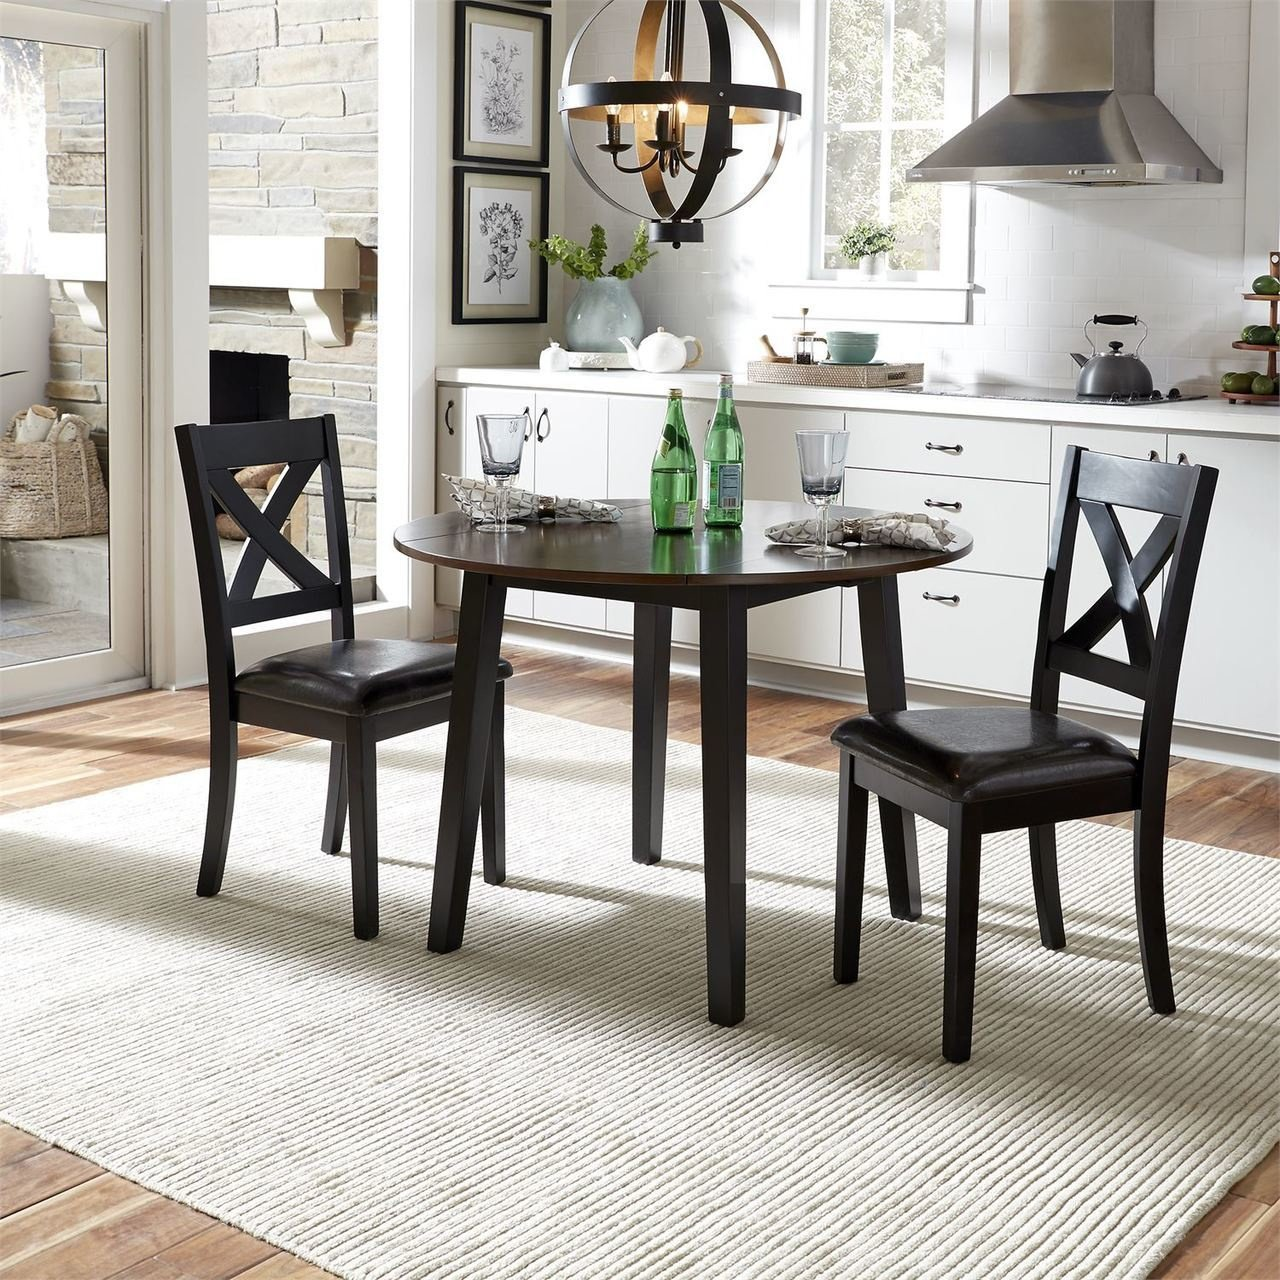 464-CD-3LS Dinette Set